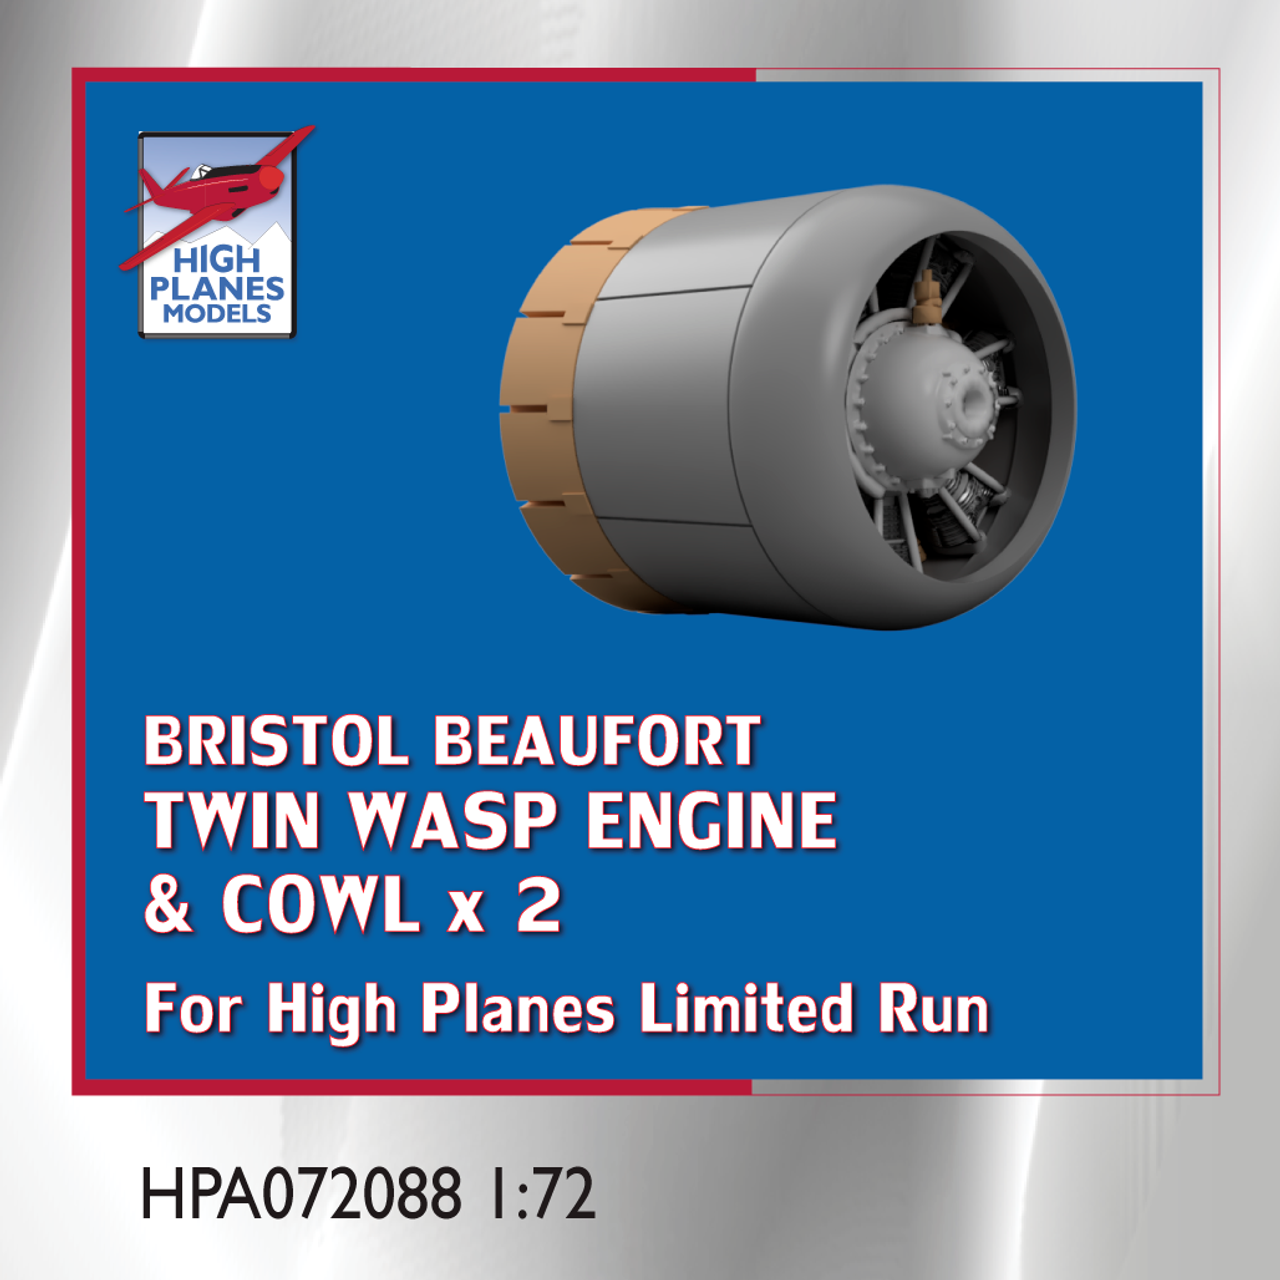 High Planes Bristol Beaufort Twin Wasp Cowl & Engines 1:72 Accessories (HPA072088)